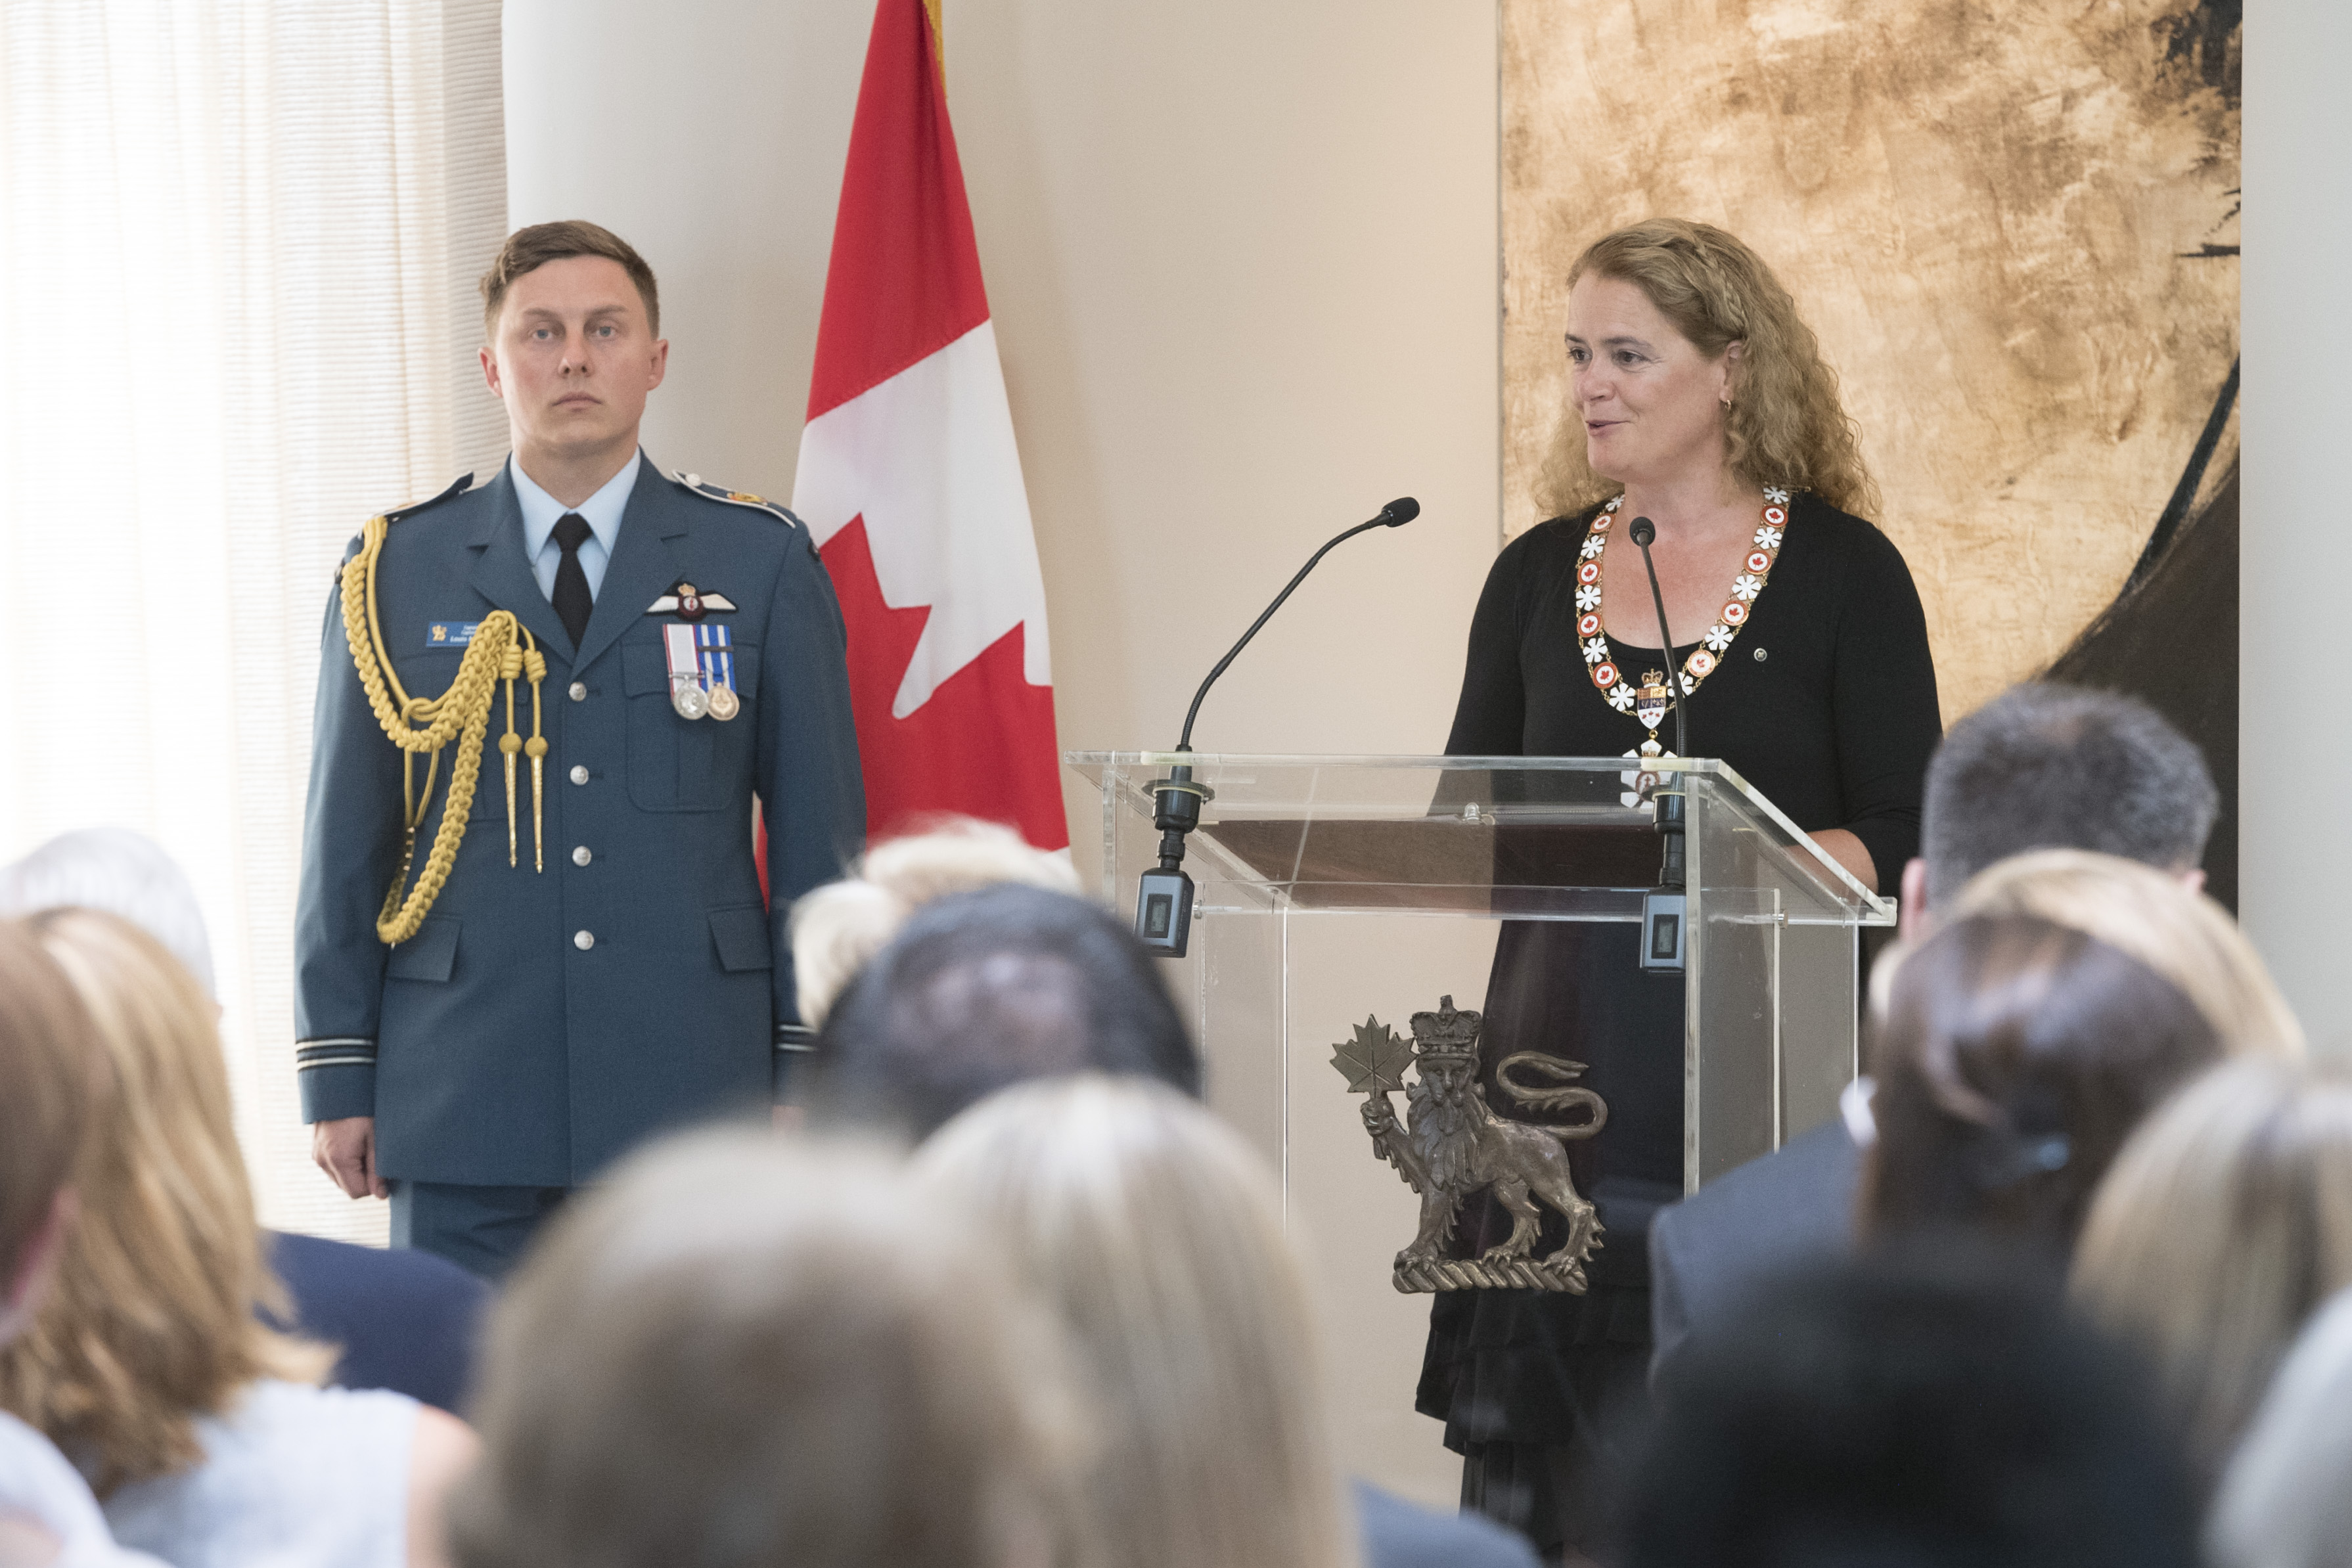 During her opening remarks, the Governor General congratulated those being honoured and explained that their achievements were a reflection of intent, sustained effort and extraordinary execution.